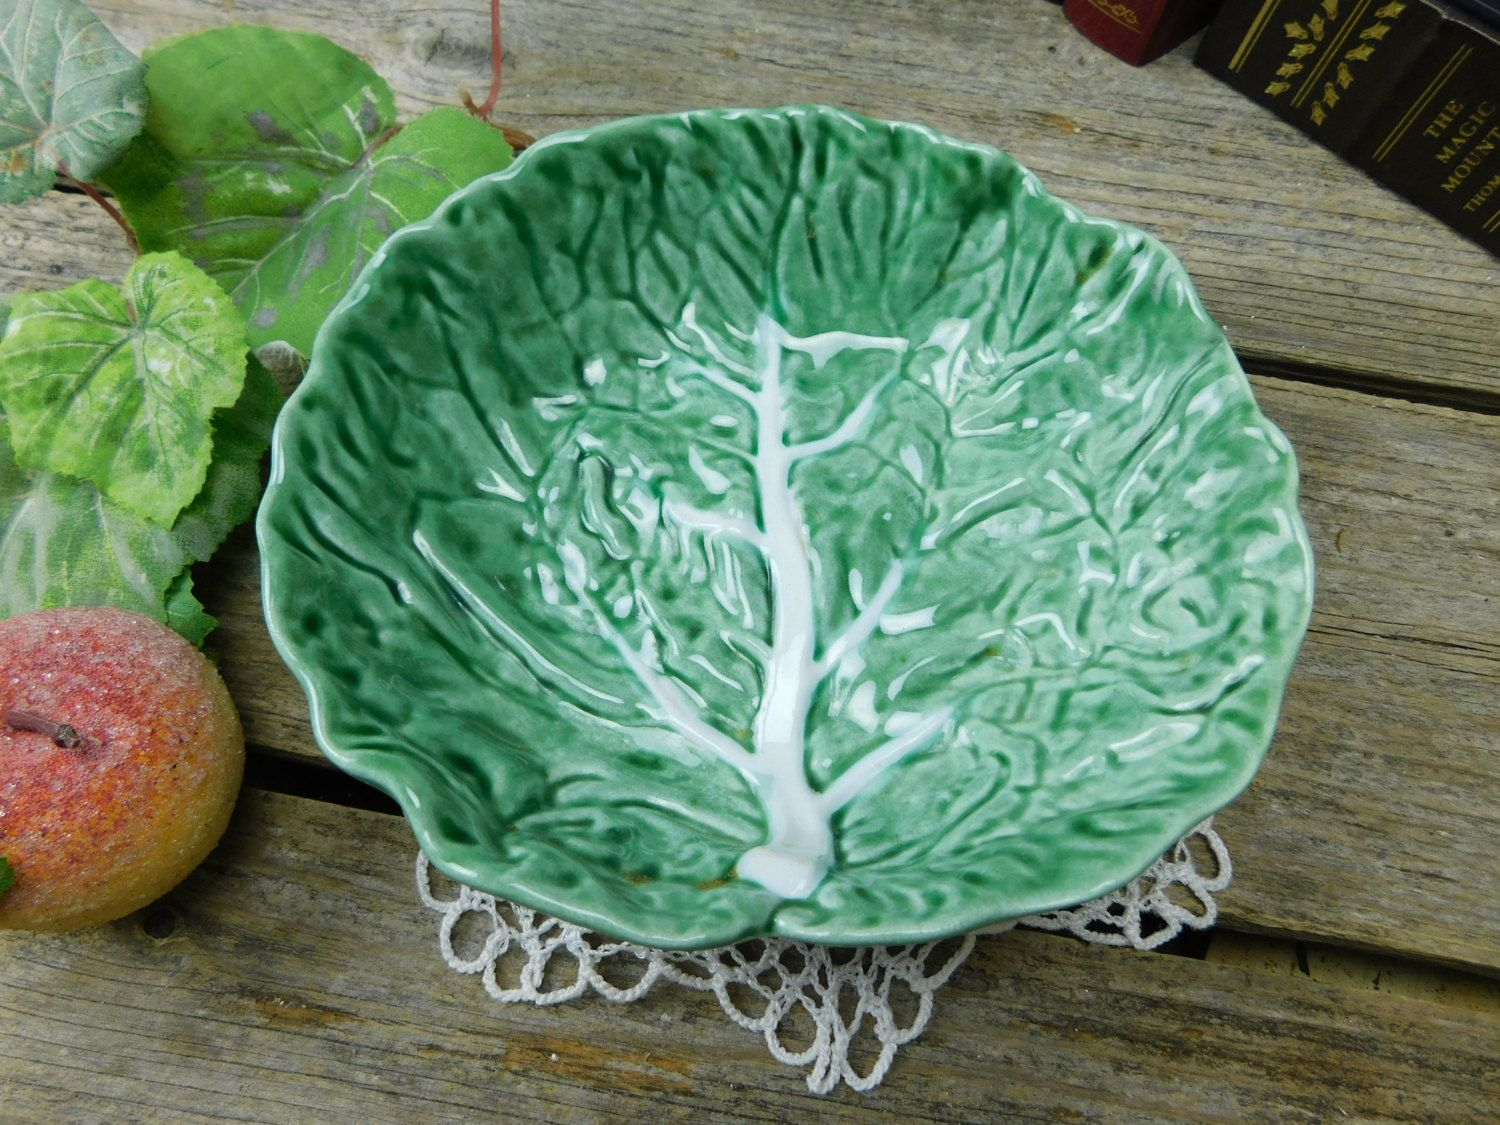 Vintage Larger Bordallo Pinheiro Lettuce Leaf Cabbage Leaf Bowl - Portugal & Vintage Larger Bordallo Pinheiro Lettuce Leaf Cabbage Leaf Bowl ...